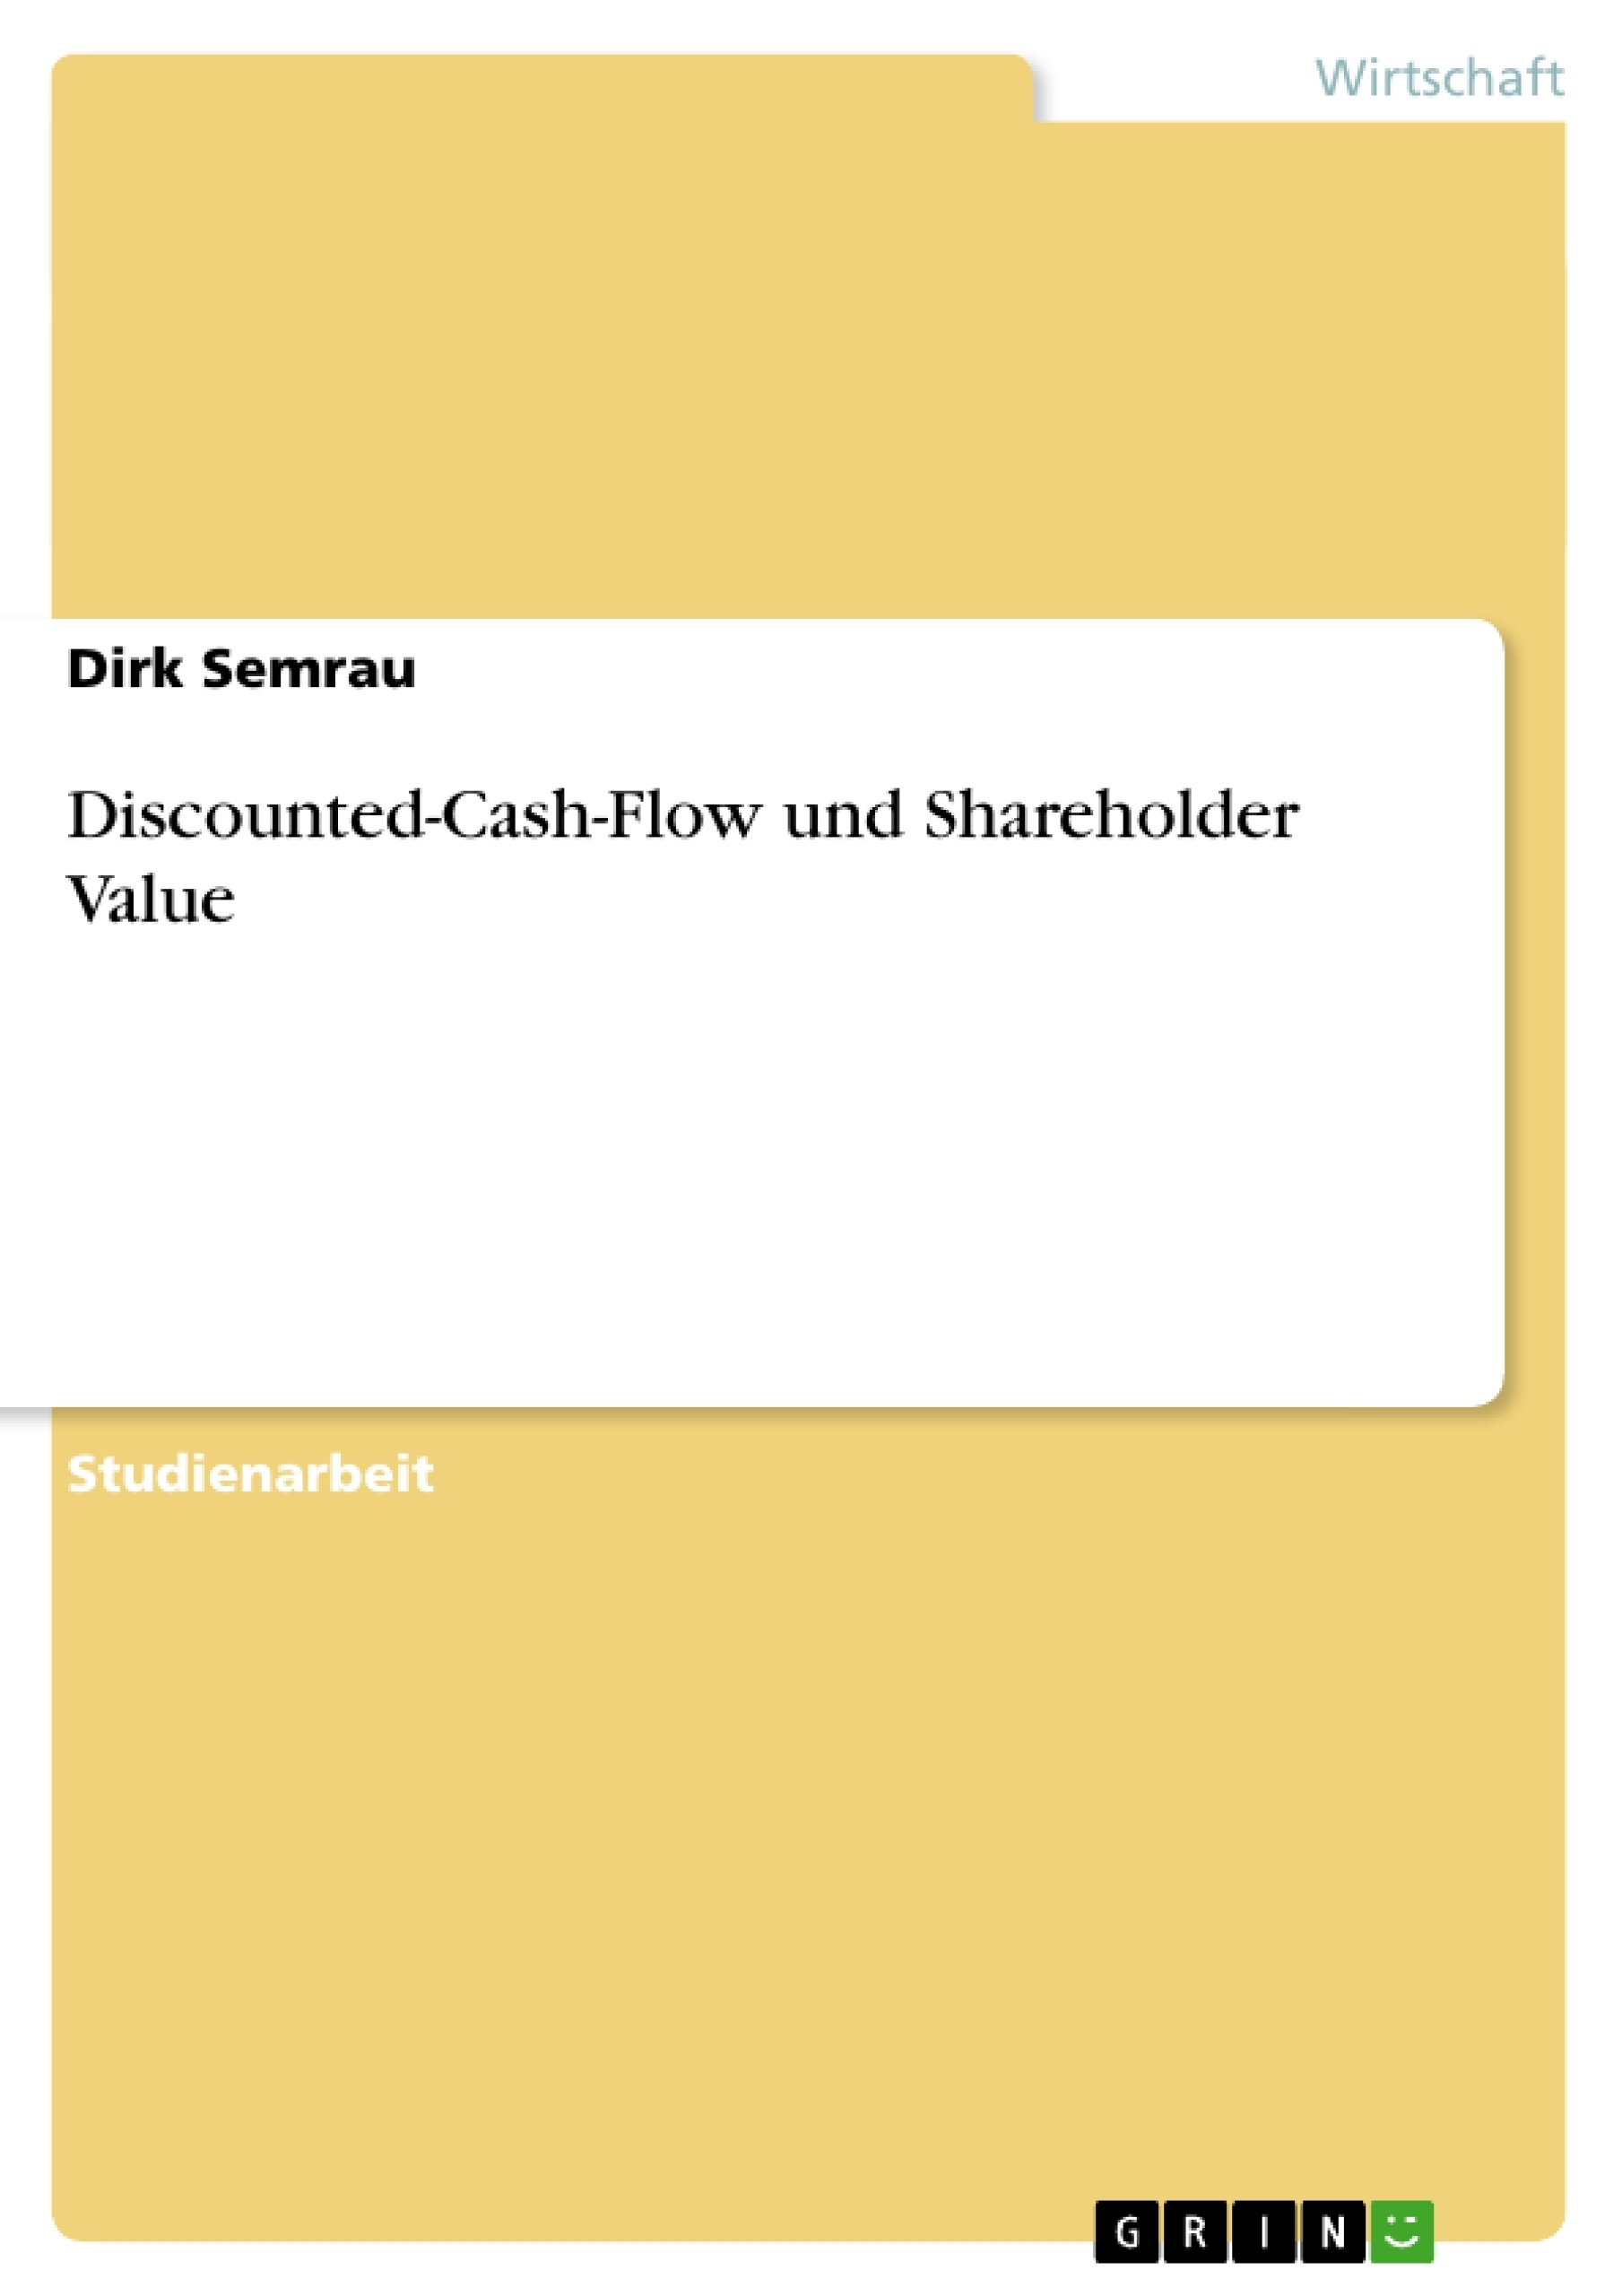 Titel: Discounted-Cash-Flow und Shareholder Value